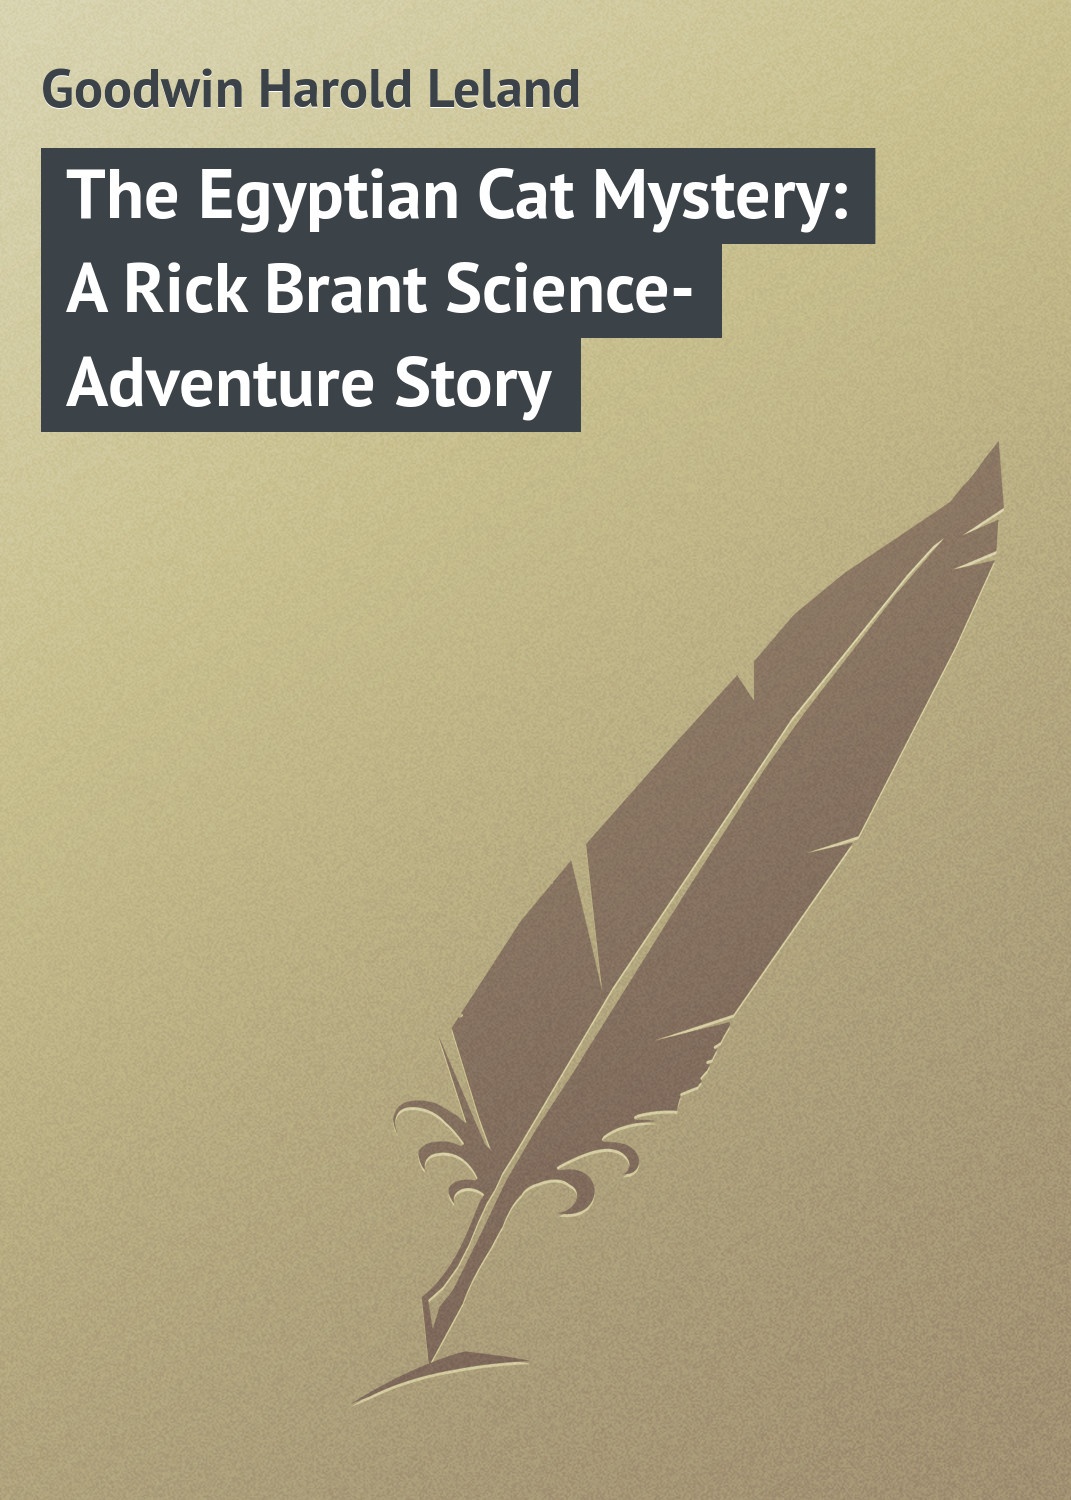 Goodwin Harold Leland The Egyptian Cat Mystery: A Rick Brant Science-Adventure Story goodwin harold leland the flying stingaree a rick brant science adventure story